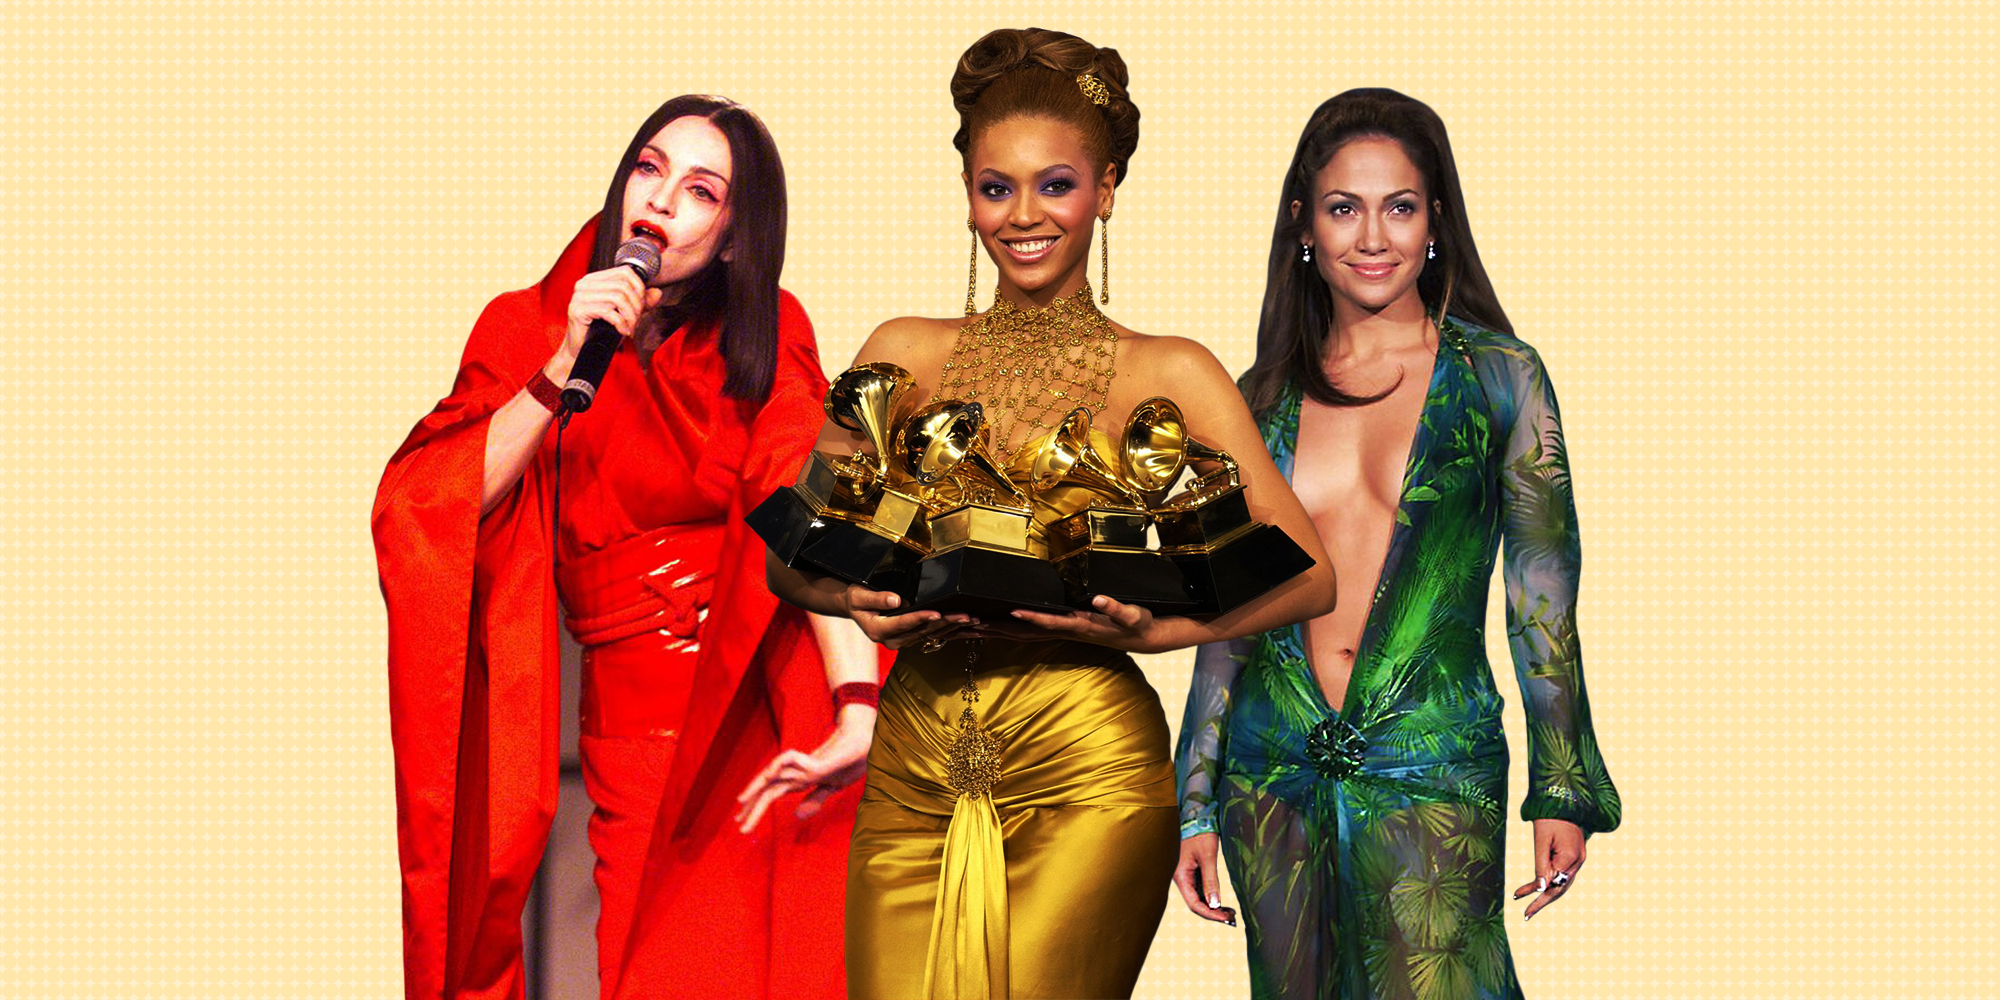 68 most iconic grammy dresses of all time grammys red carpet fashion 68 most iconic grammy dresses of all